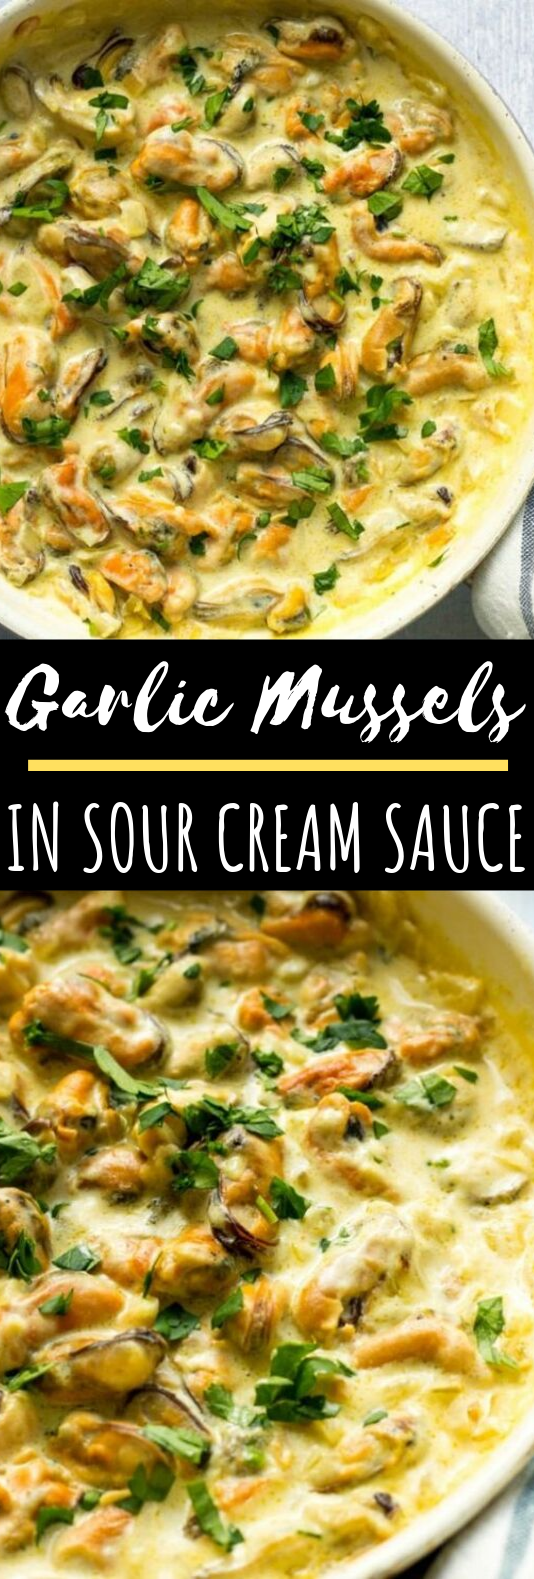 Garlic Mussels In Sour Cream Sauce #seafood #dinner